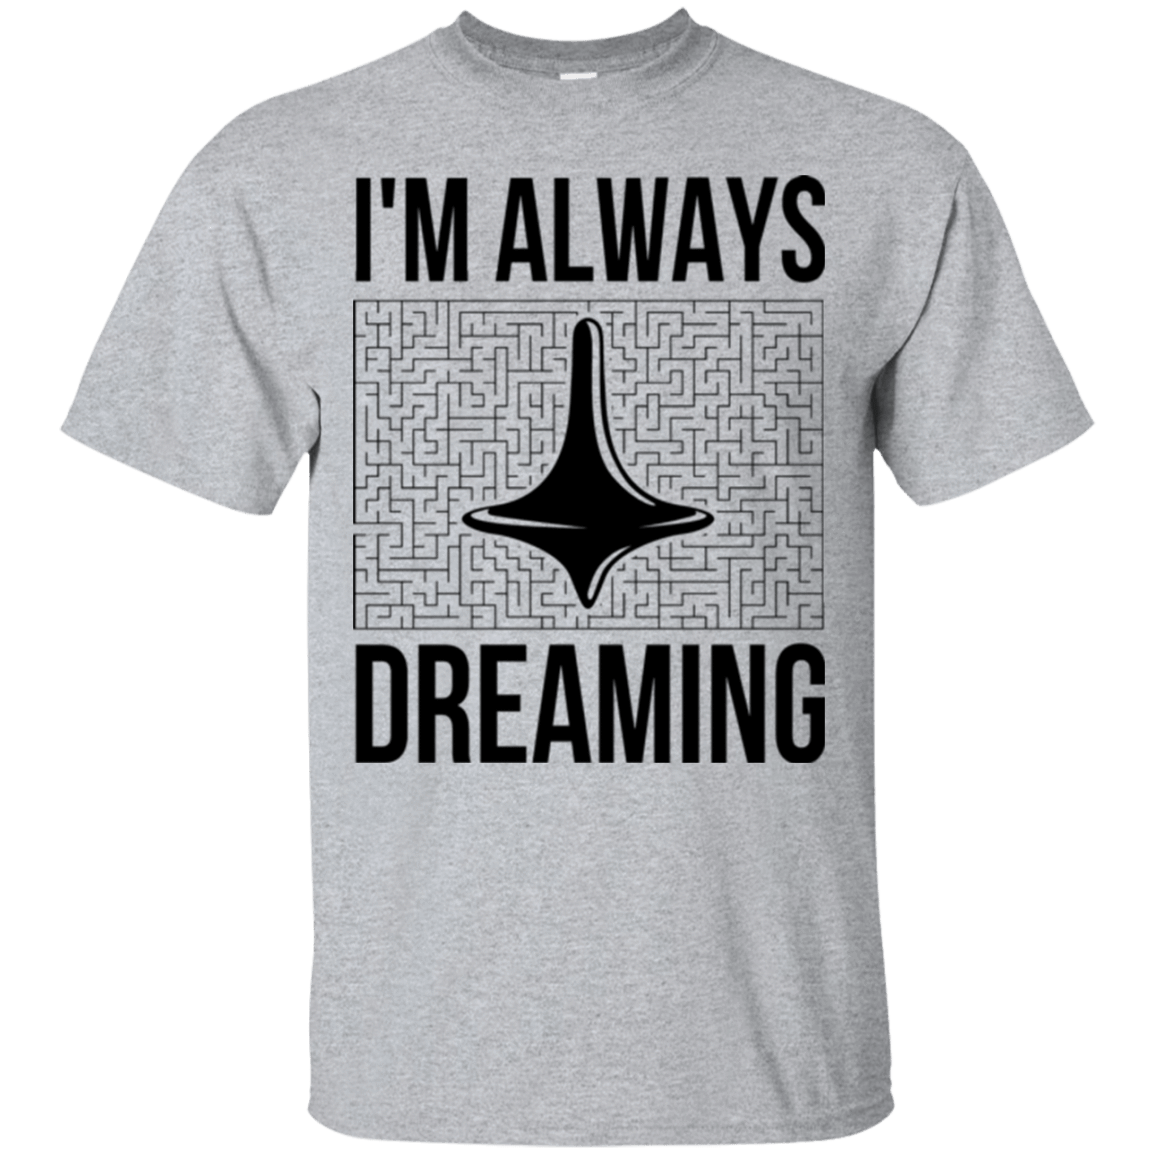 Always dreaming T-Shirt